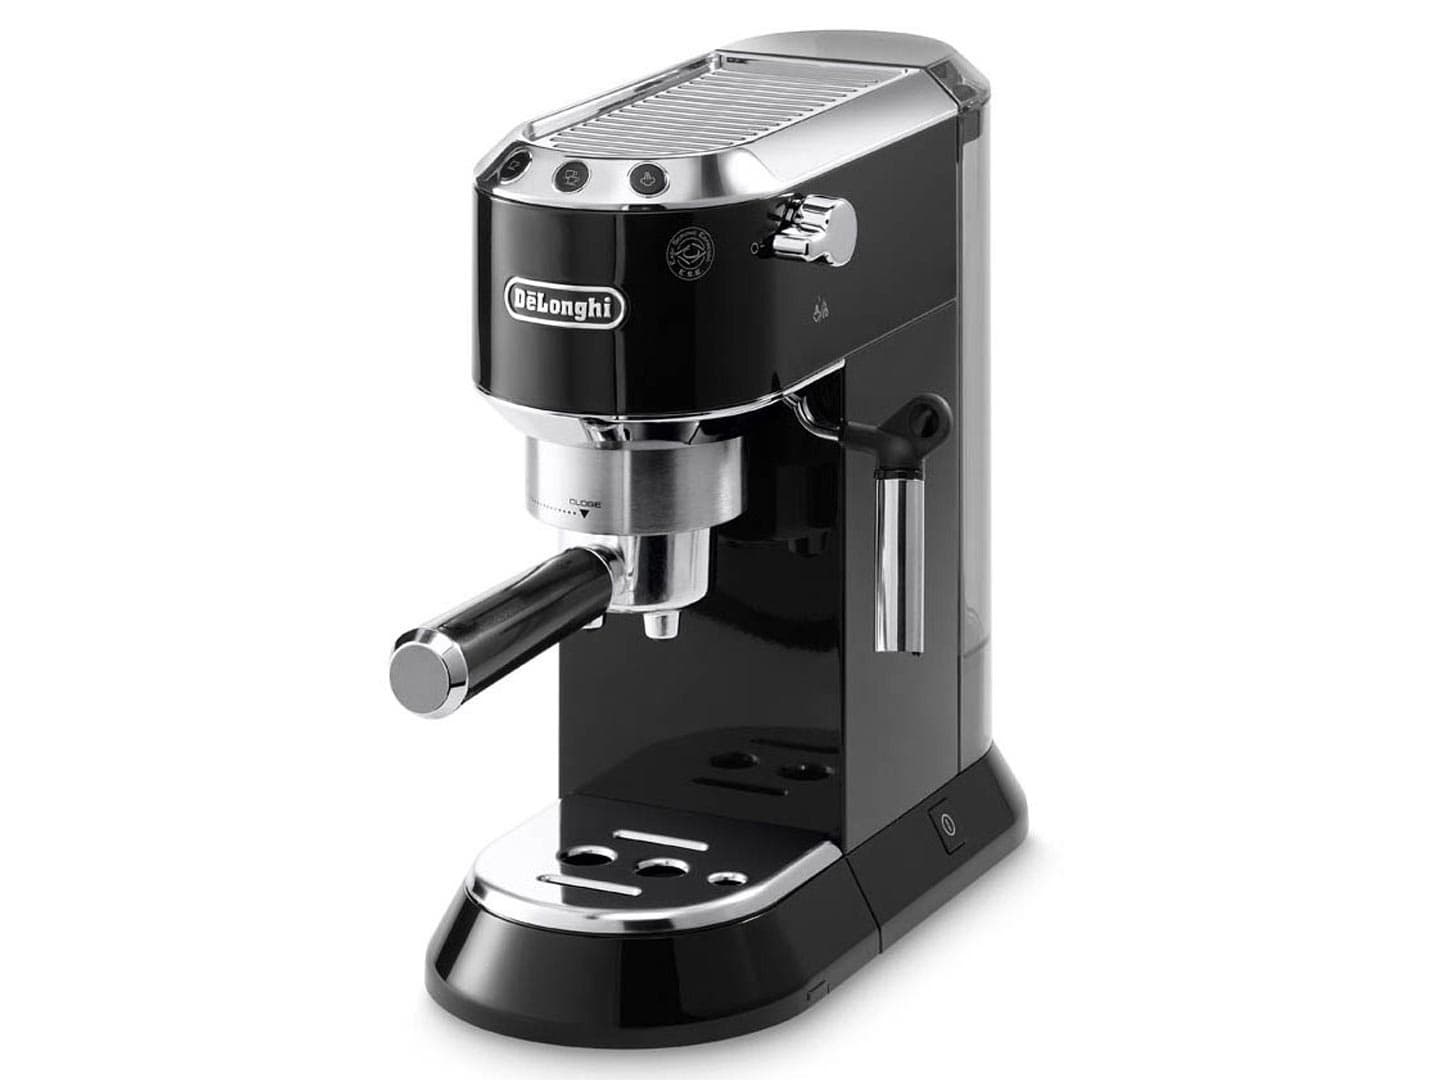 Dedica EC 680.BK Pump Espresso Coffee Machine